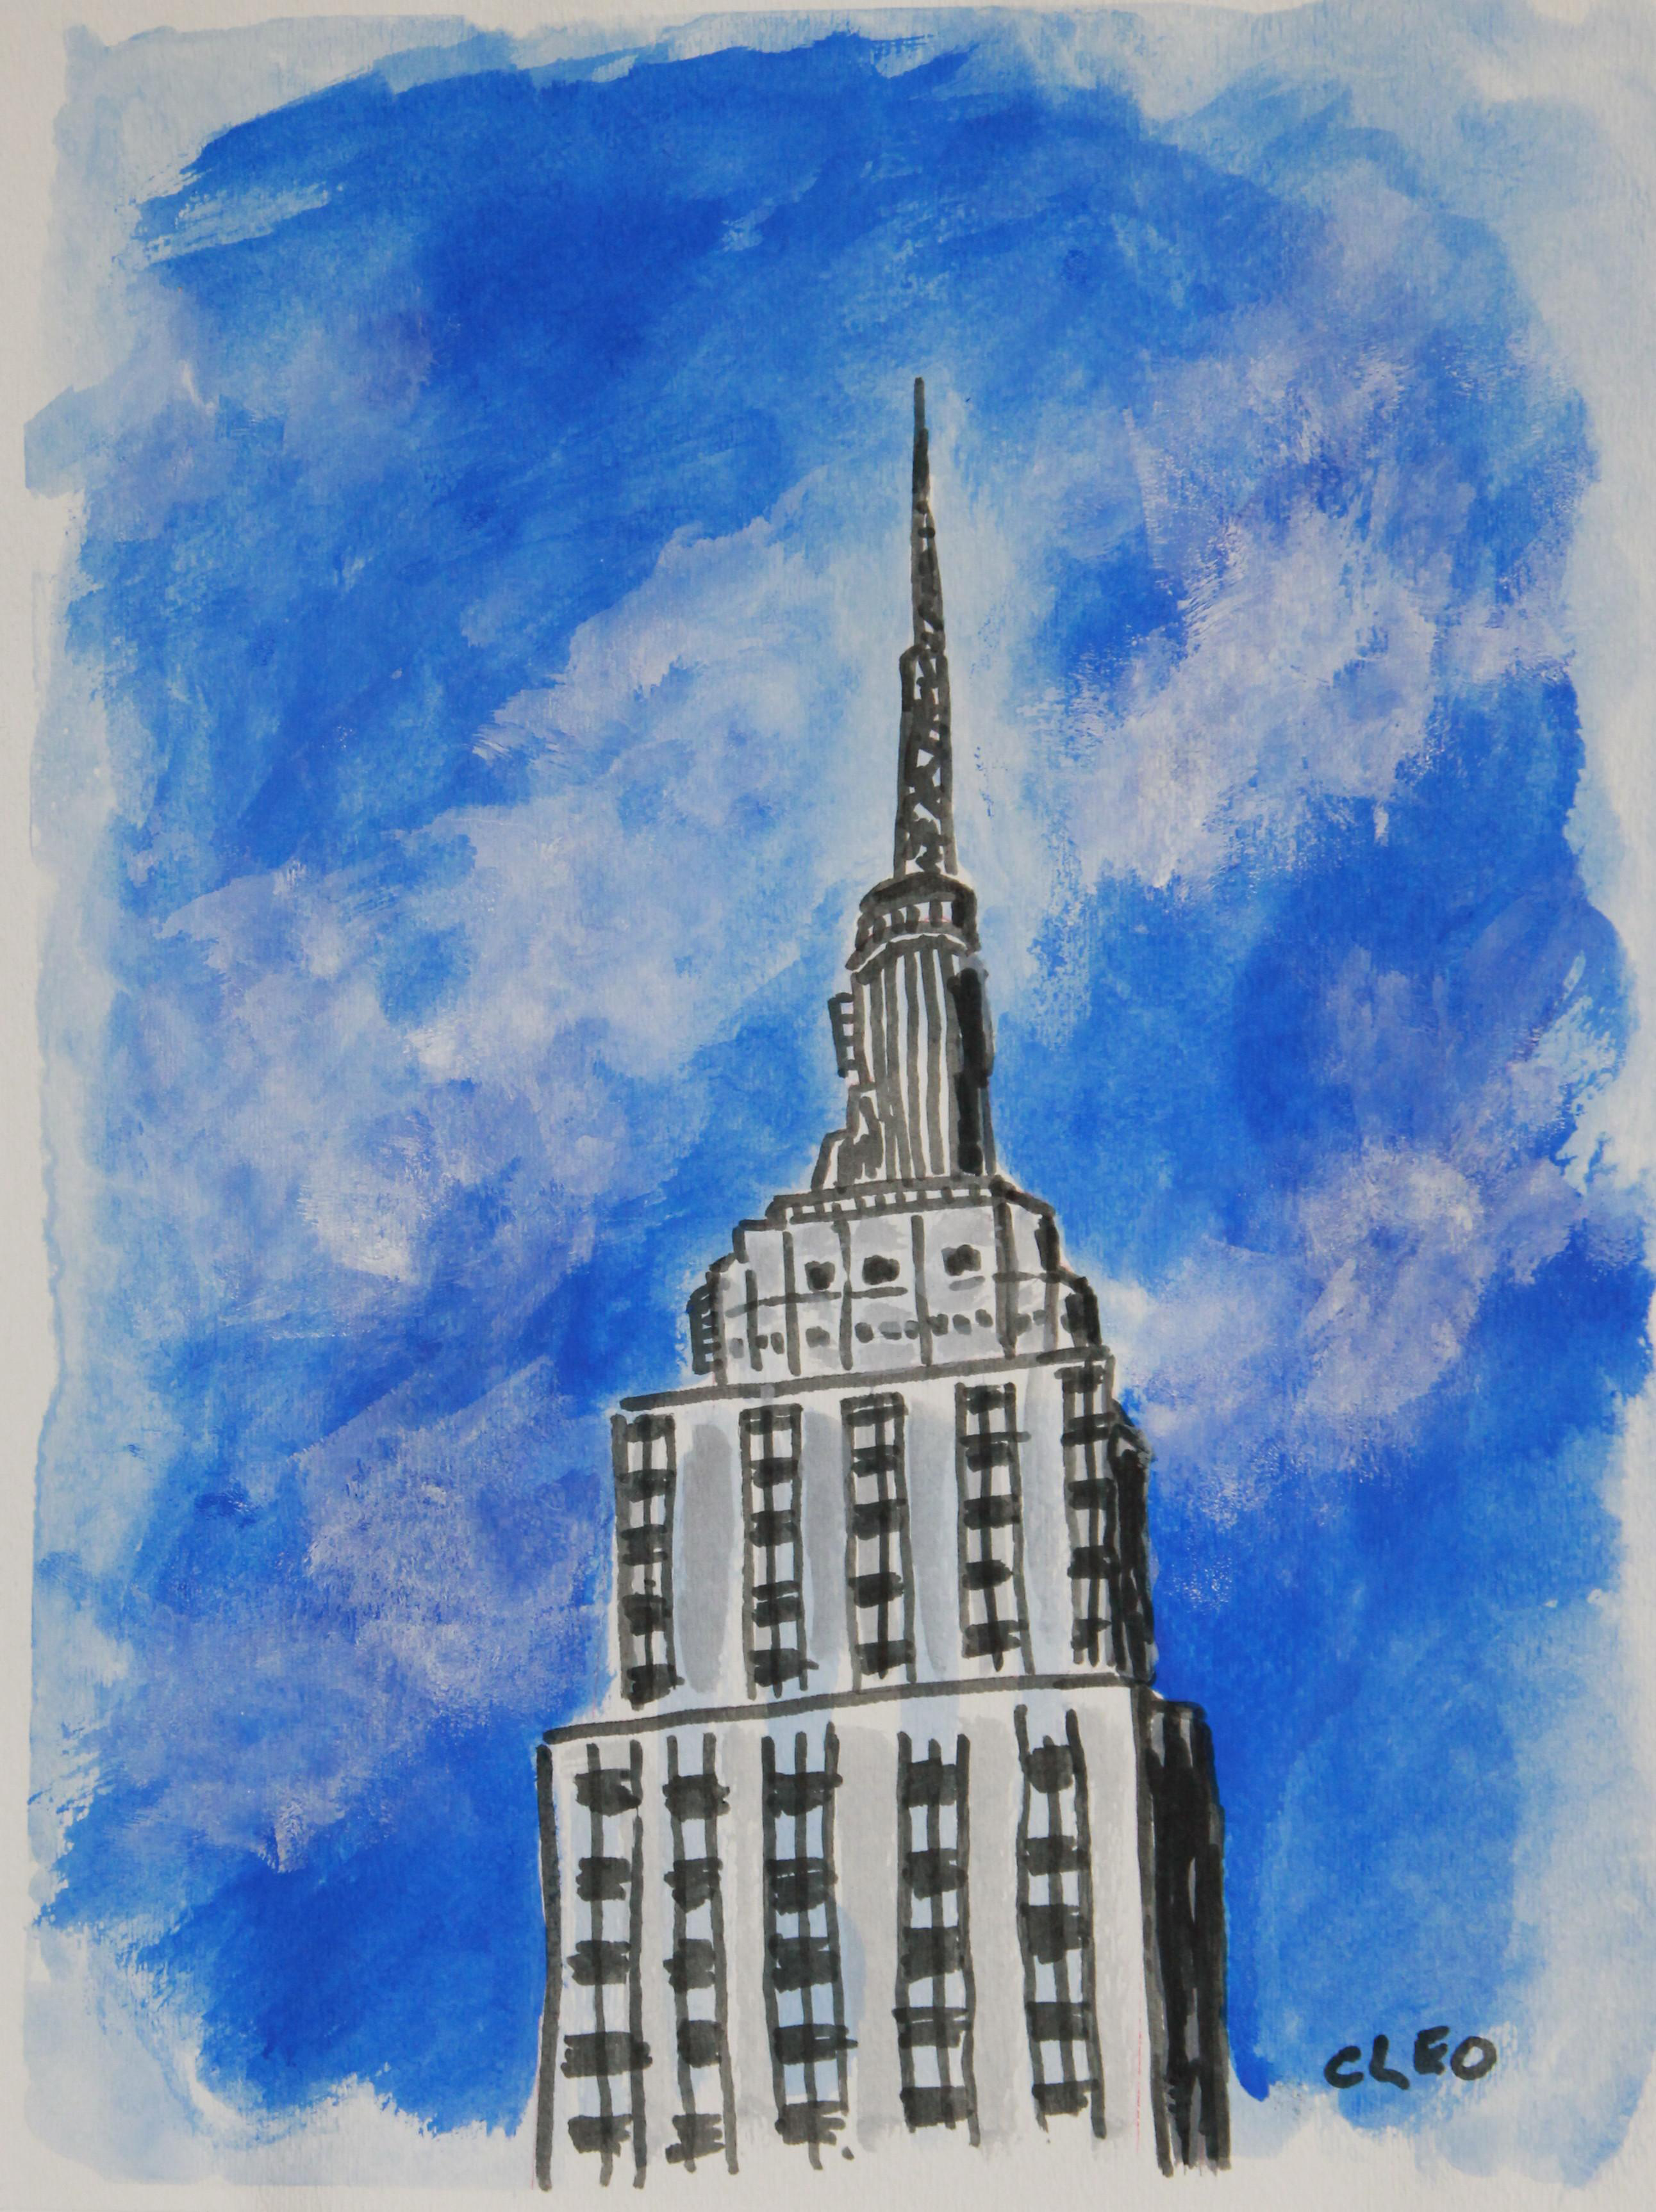 Empire State Building Painting by Cleo | Chairish